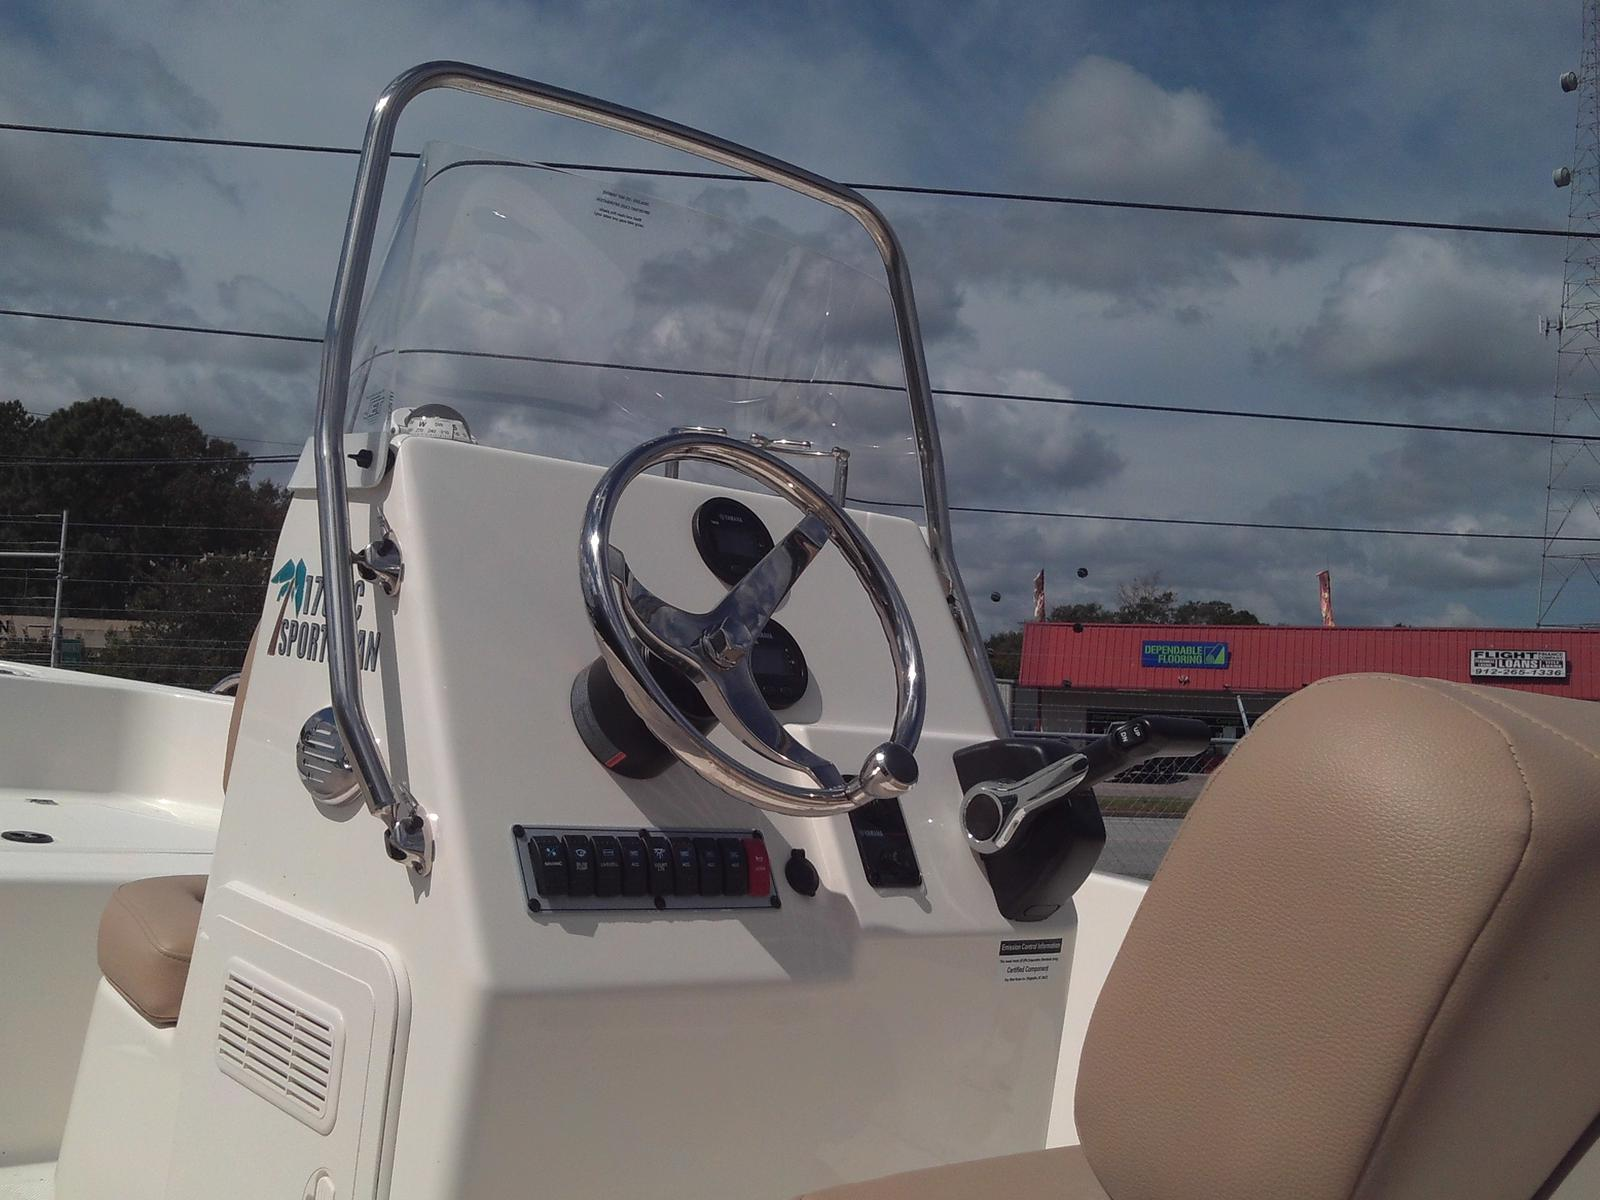 2019 Key West boat for sale, model of the boat is 176cc & Image # 5 of 6